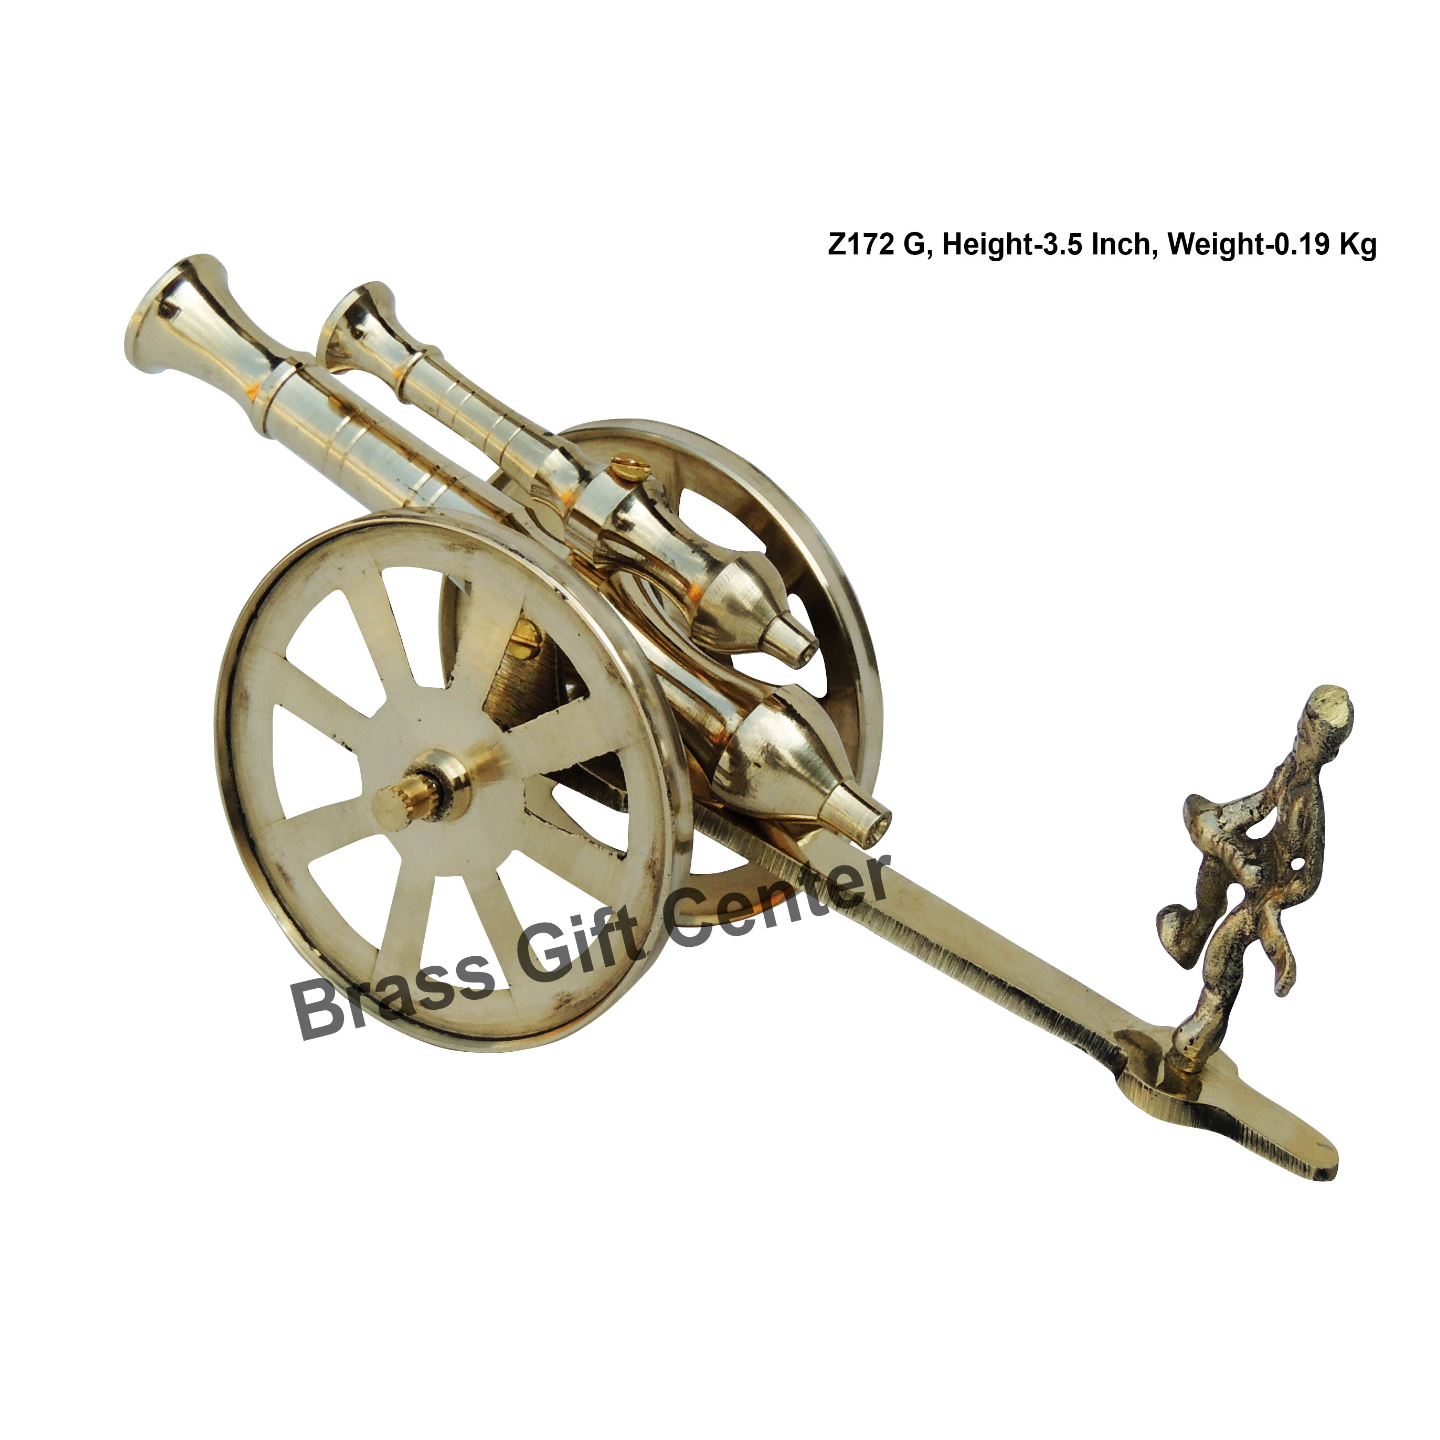 Brass Small Toop Cannon No 8 - 7.6*2.7*3.5 Inch  (Z172 G)